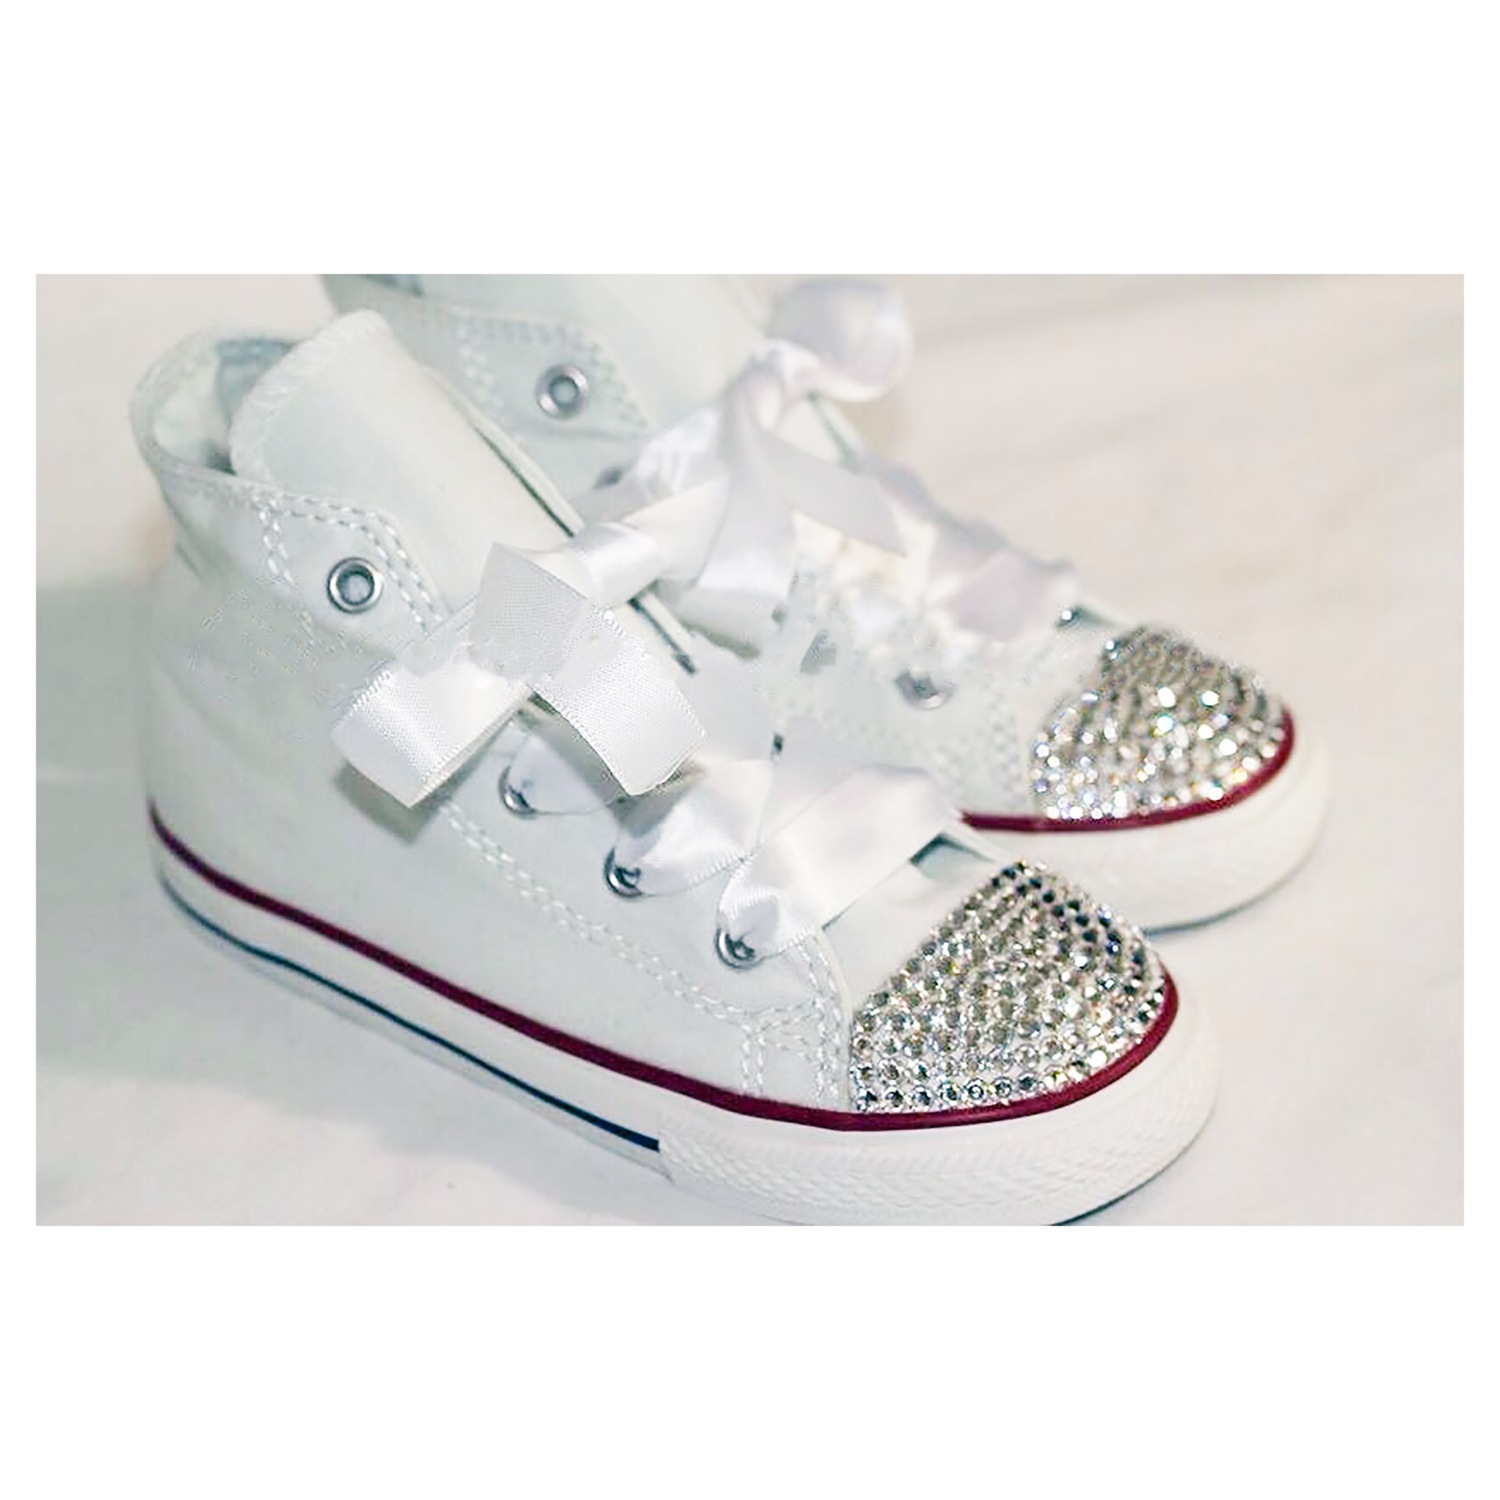 79be876e7880 Swarovski Crystal Sparkly Bling Converse Trainers (Children s High Top -  Any Colour)